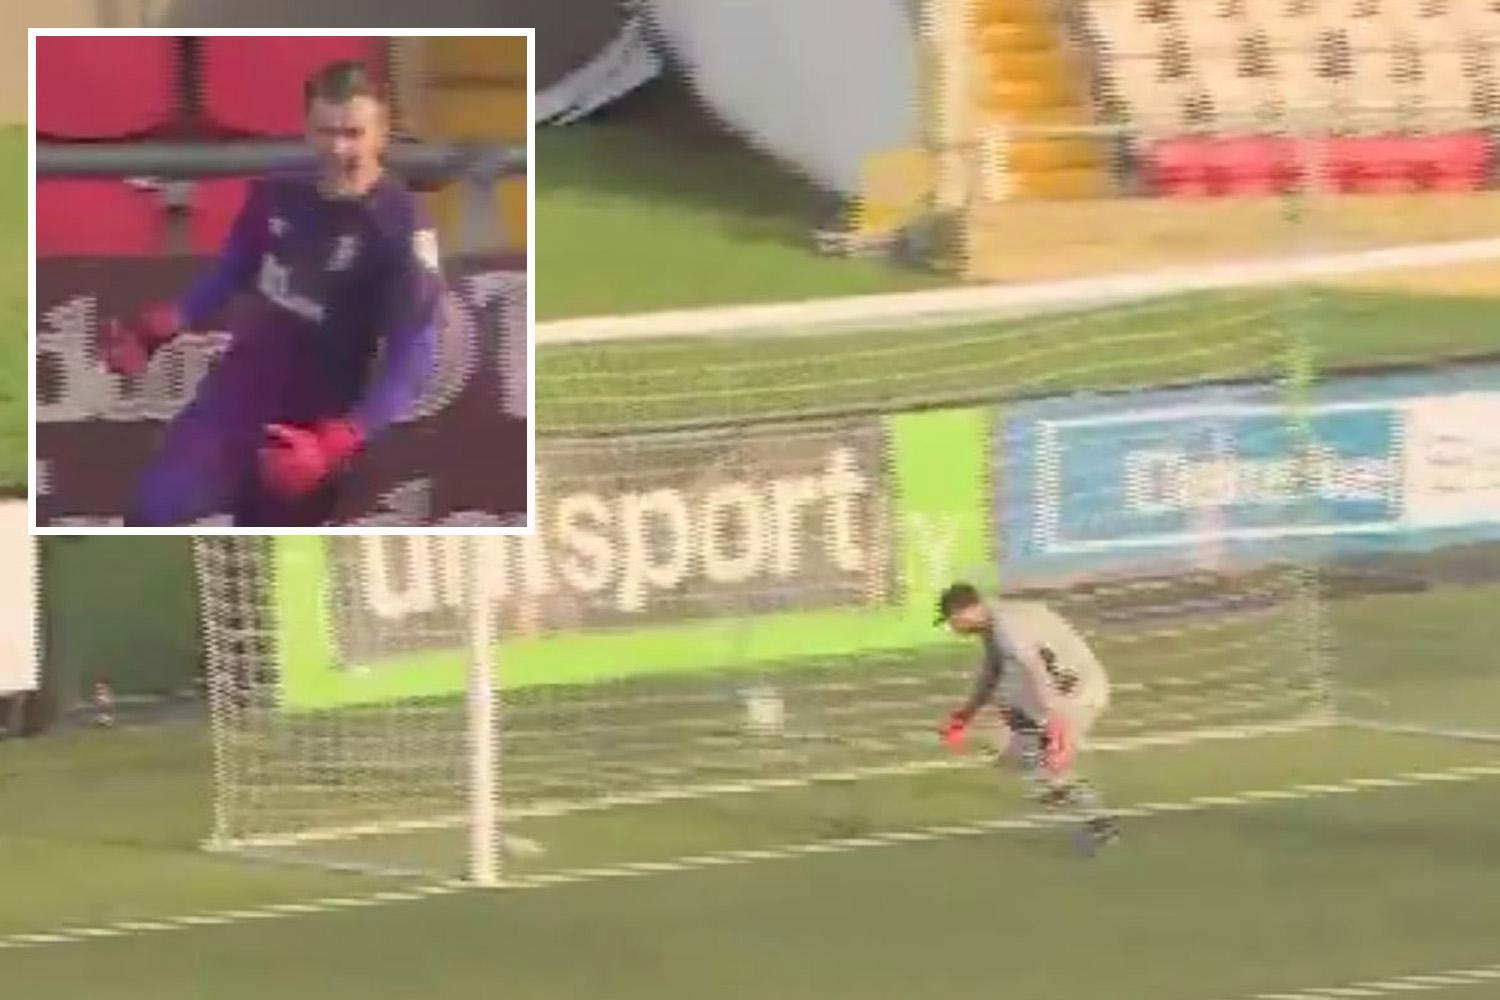 Goalkeeper scores from 80 yards out and wildly runs up touchline to celebrate with fans